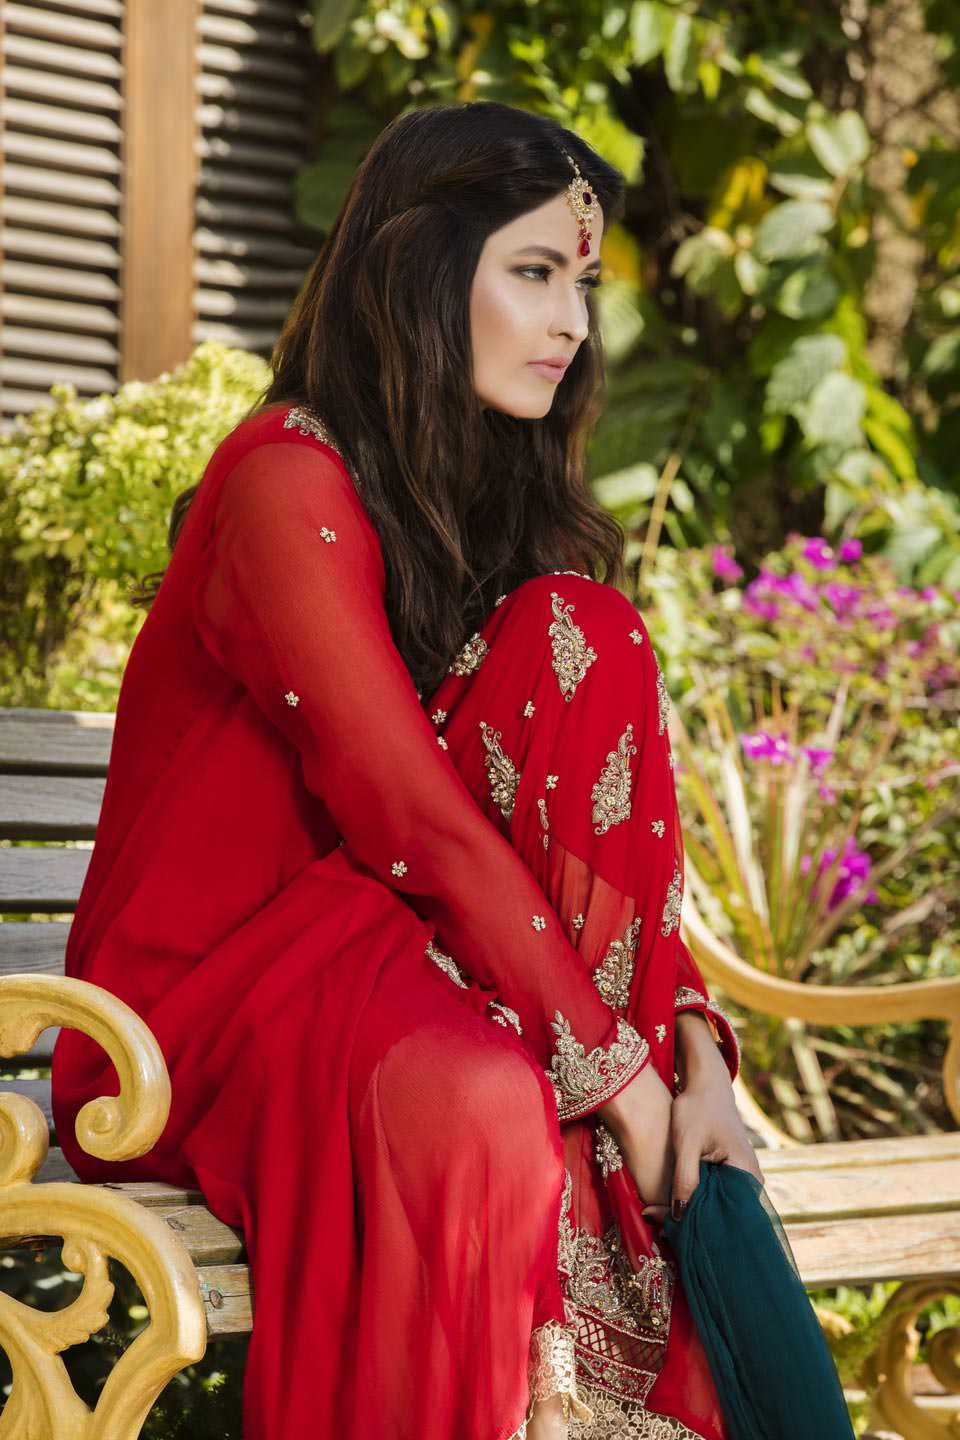 Buy Red, Bottle Green And Fone Color Bridal Dress – G12069 Online In USA, Uk & Pakistan - 04